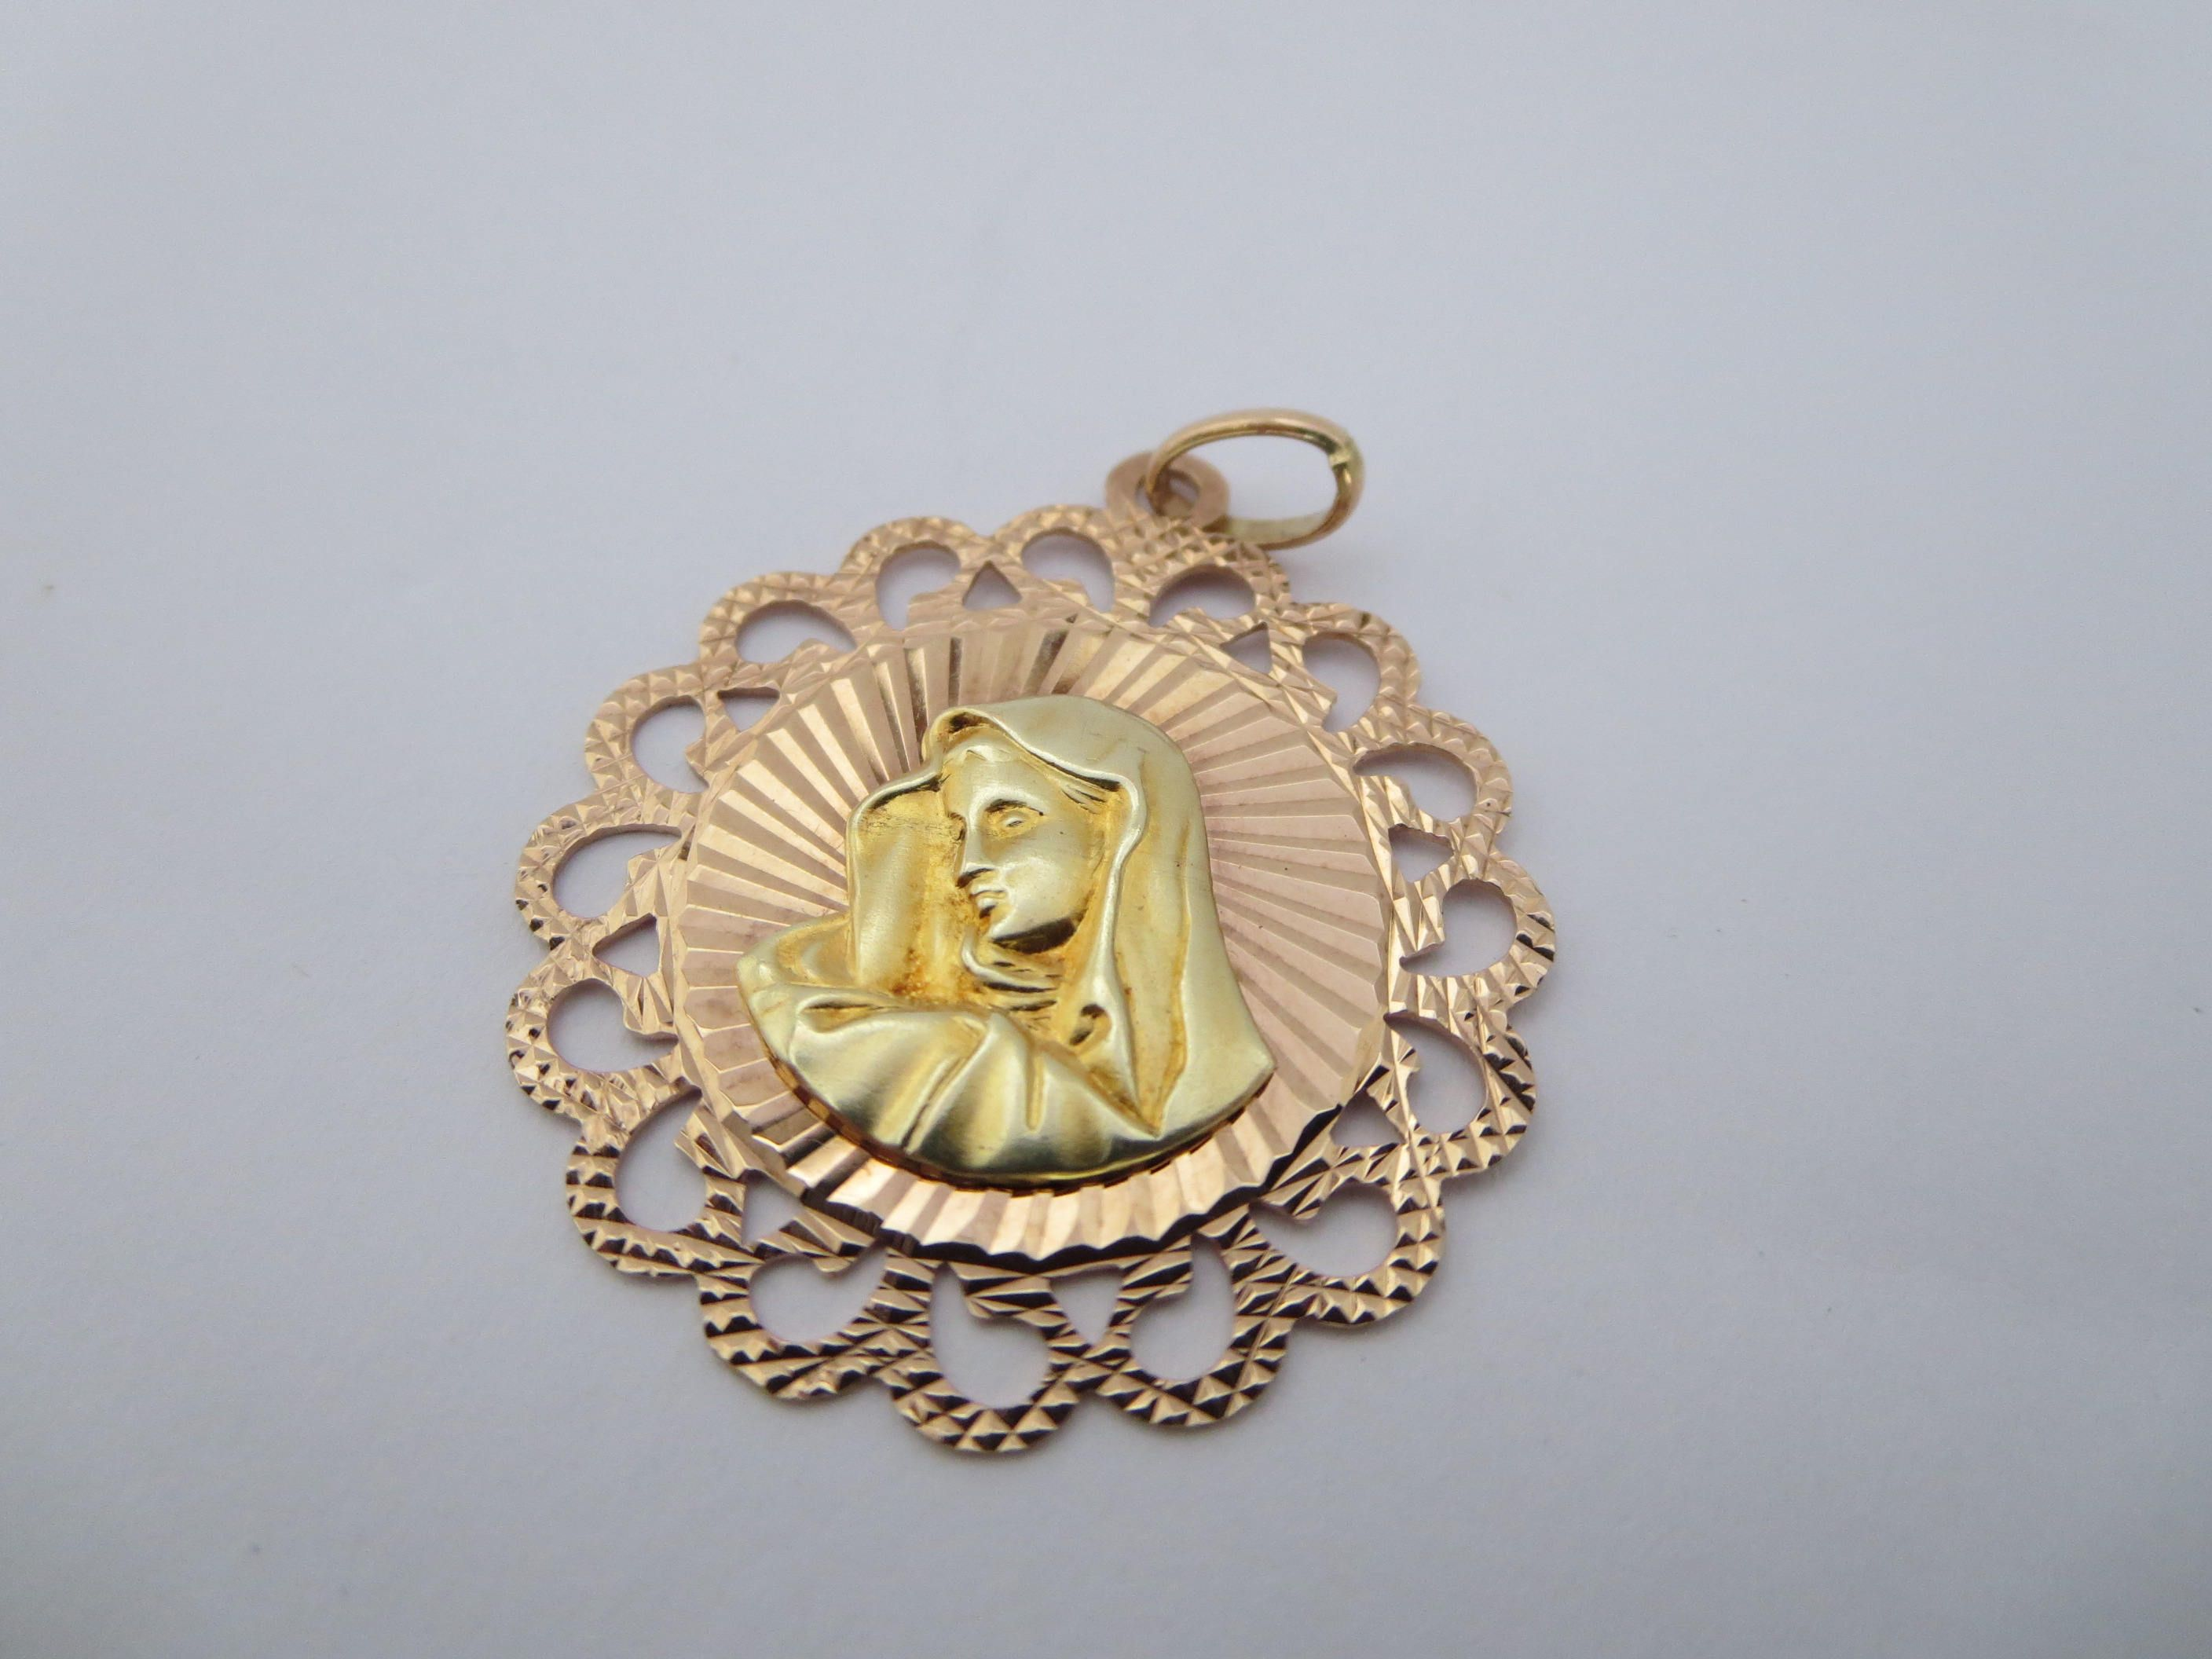 mother pendant madonna religious gift virgin necklace jewelry gold catholic pin mary medal medaillon